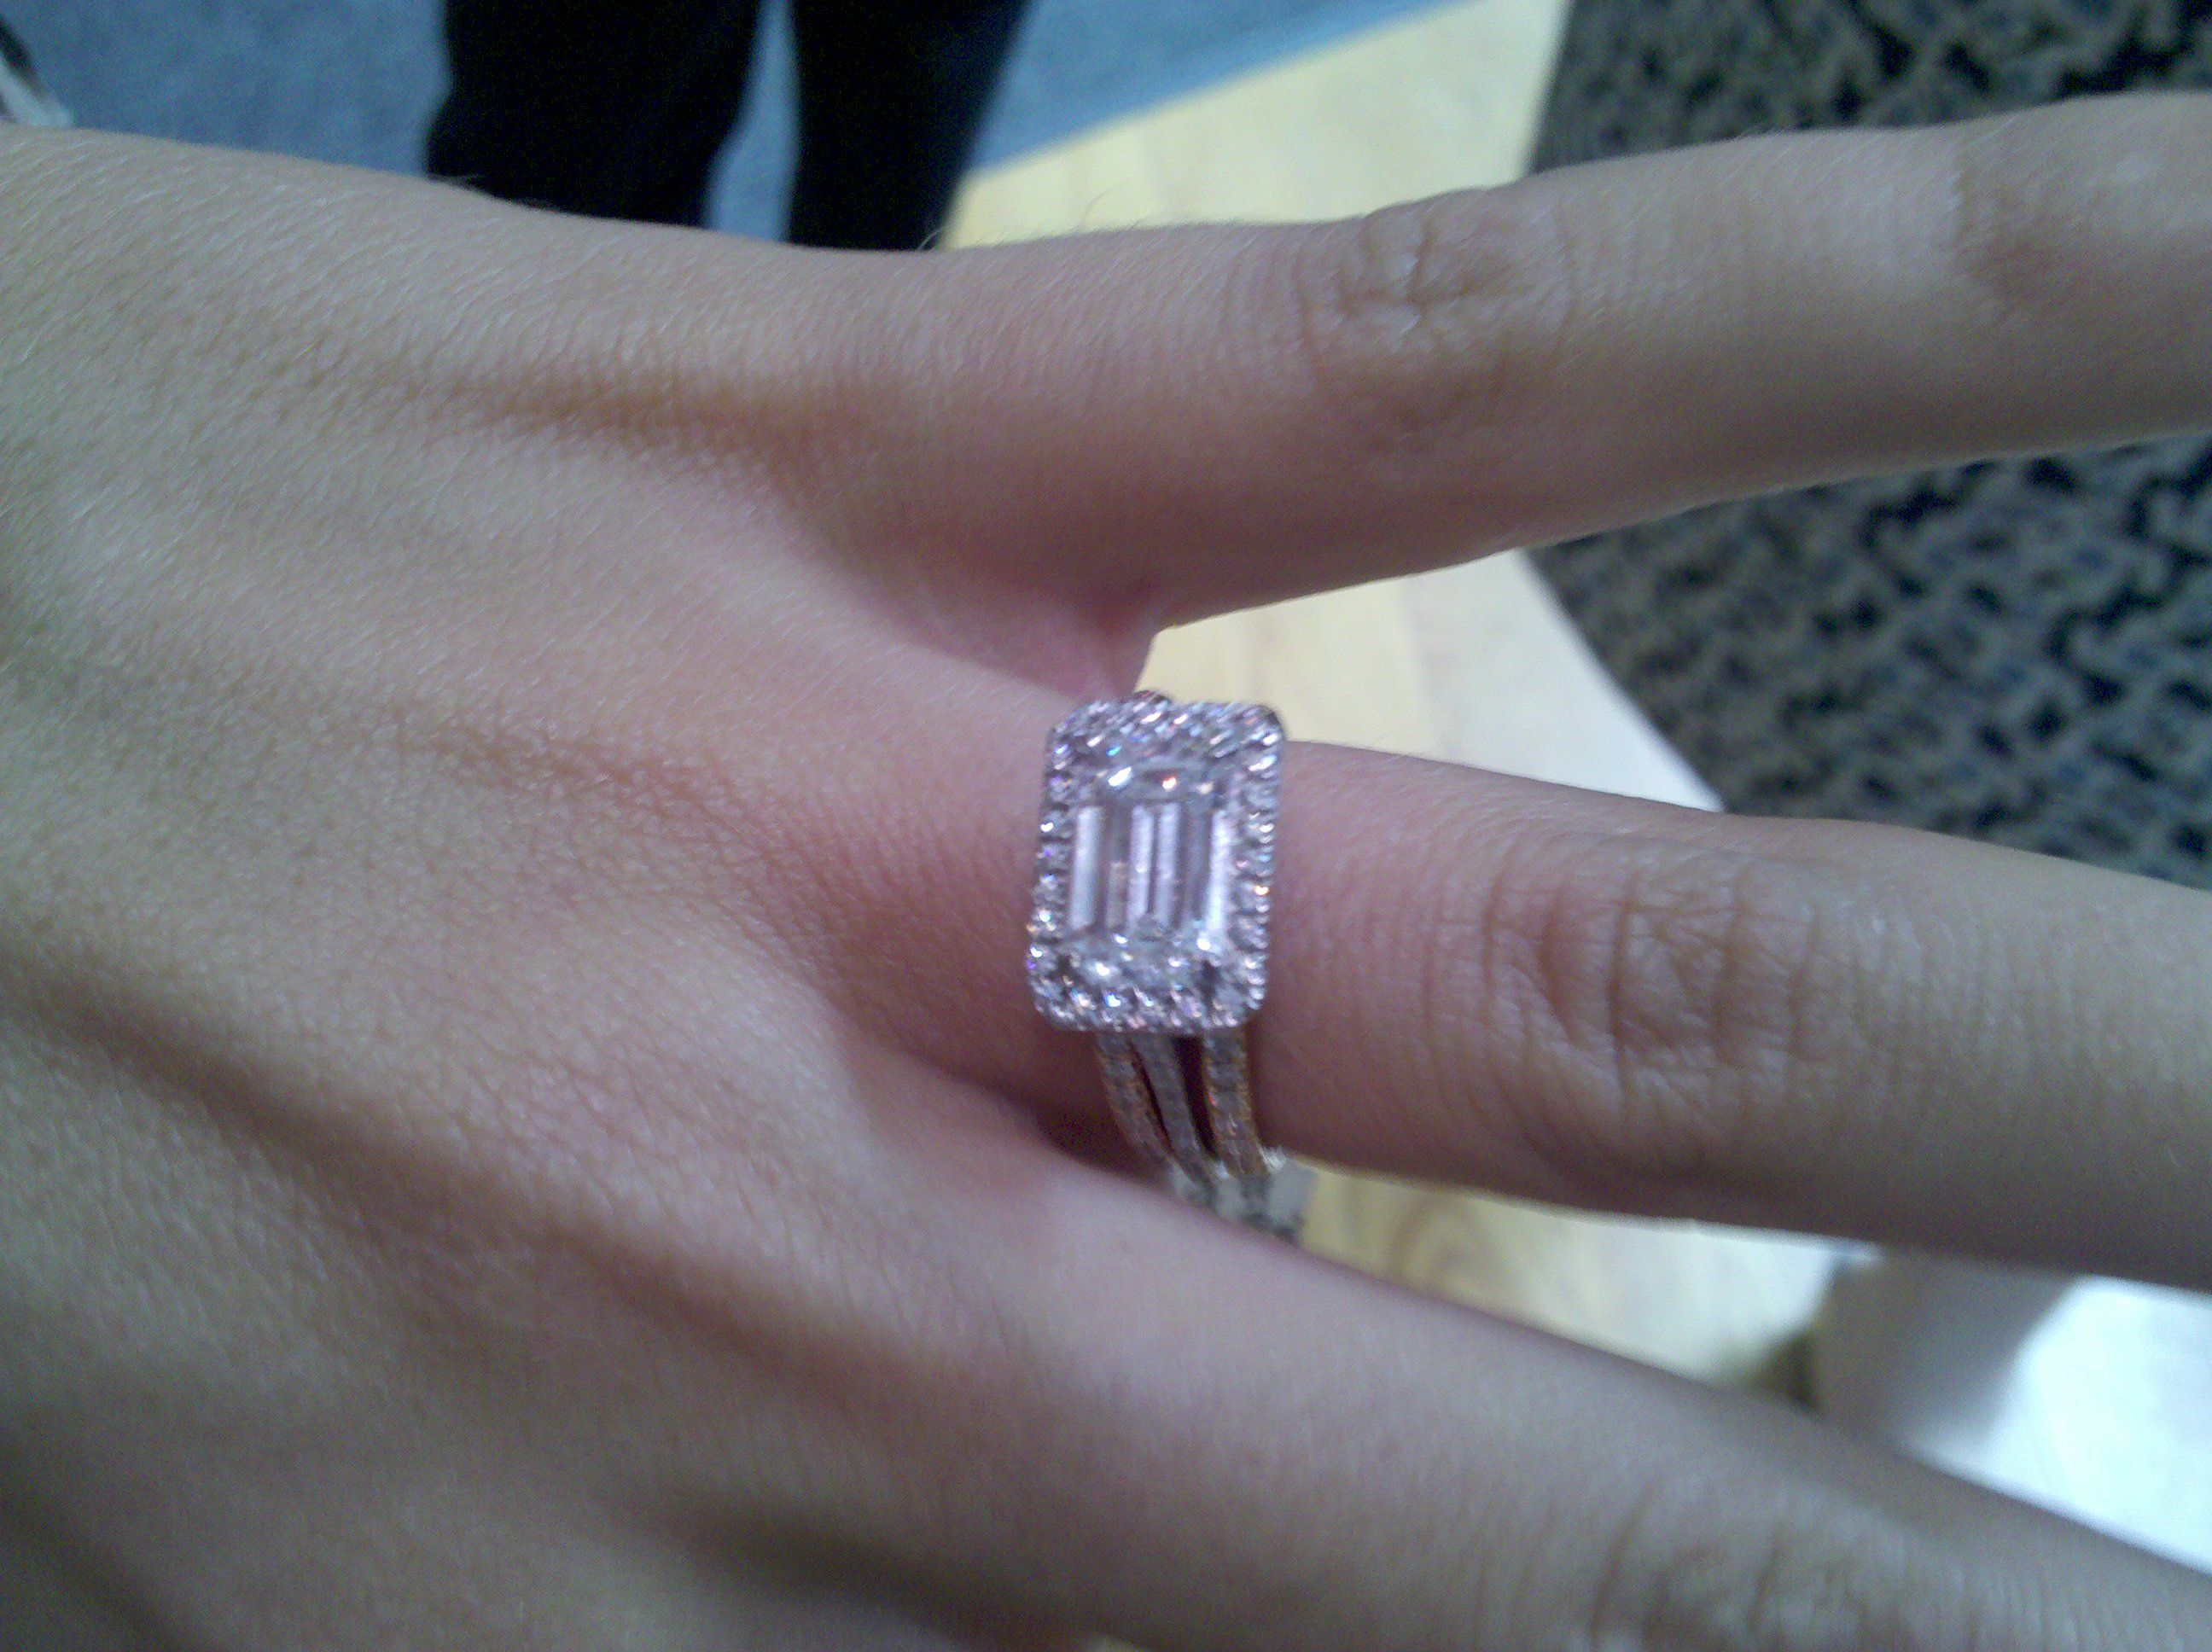 Horizontally Set Emerald Cut Diamond Engagement Ring With Pave Halo Shown 2 Eternity Bands